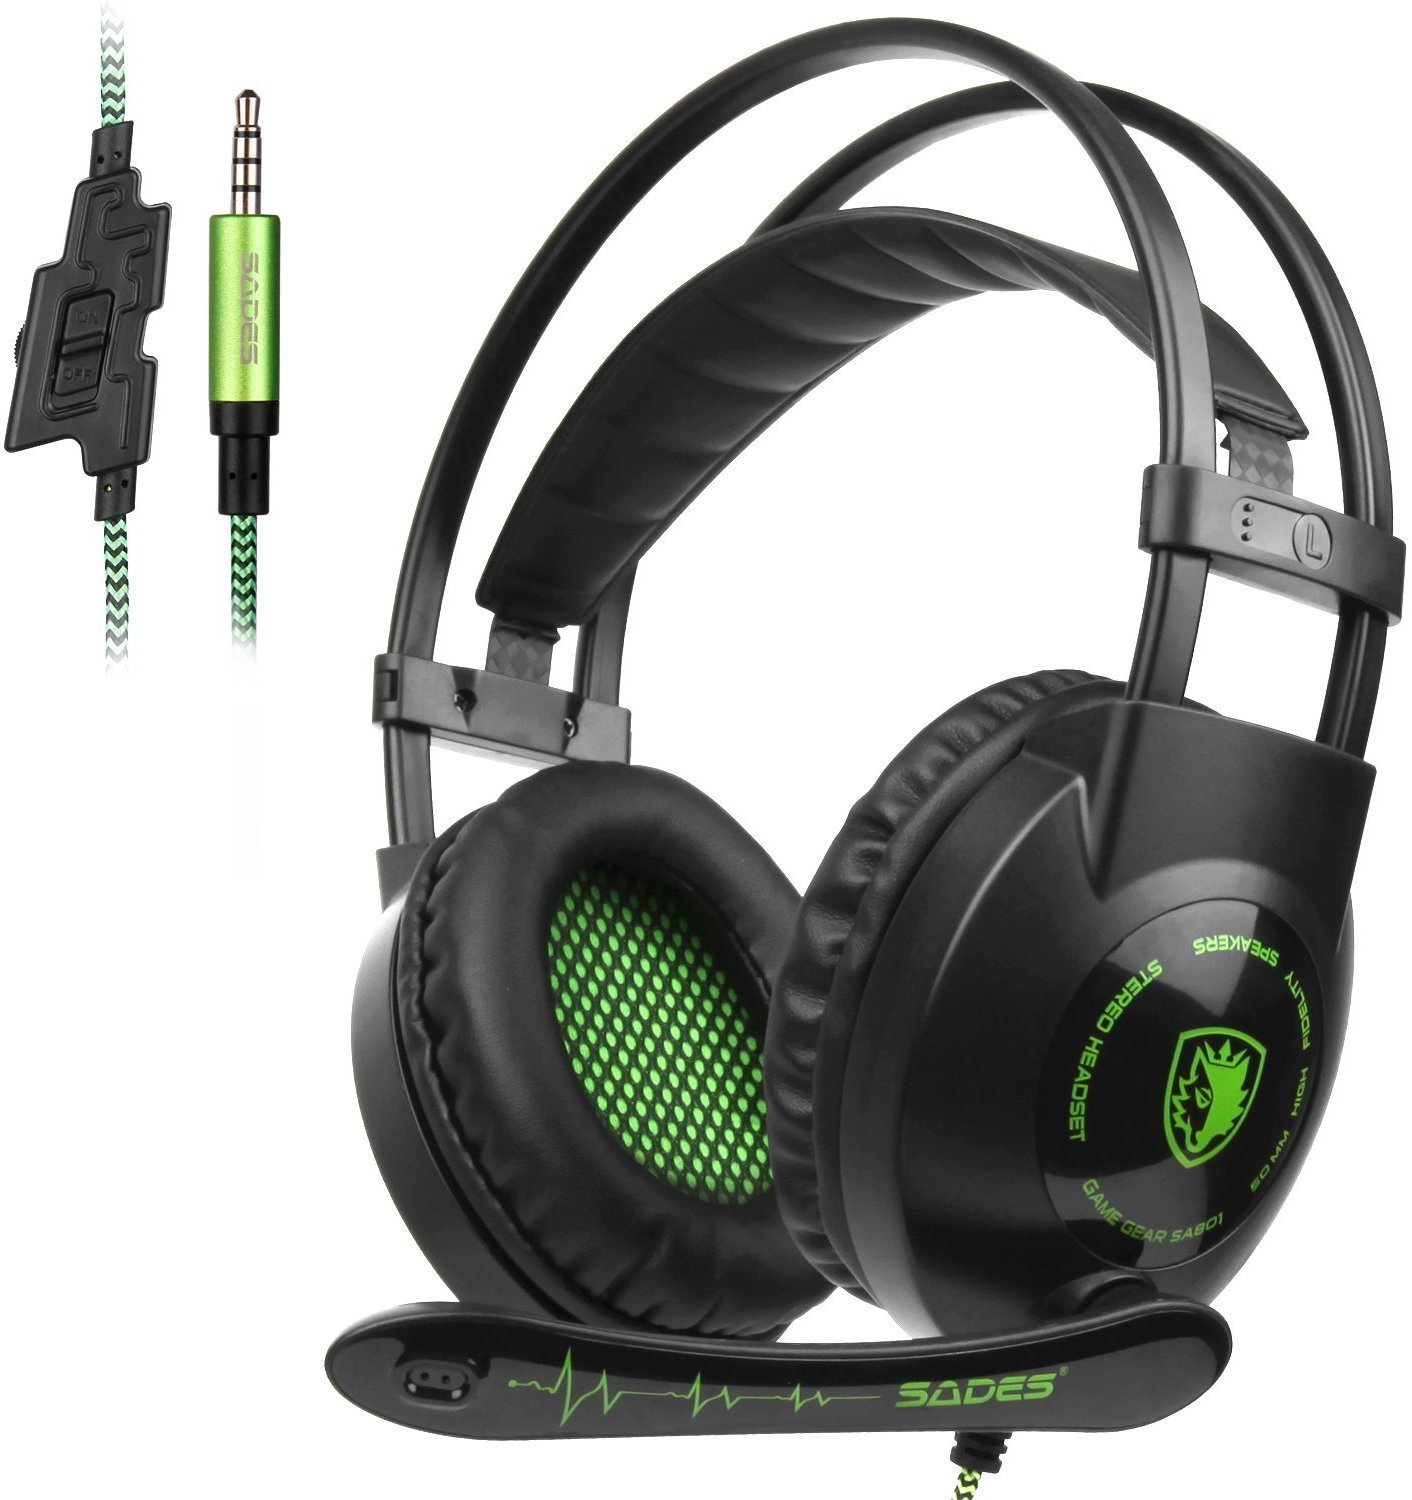 SADES SA801 3.5mm Surround Sound Stereo PC Gaming Headset Headband Gaming Headphones with Microphone Over-the-Ear Volume control Noise Isolation for New Xbox One PC Mac Tablets PS4 Laptop Phone(Green) by SADES